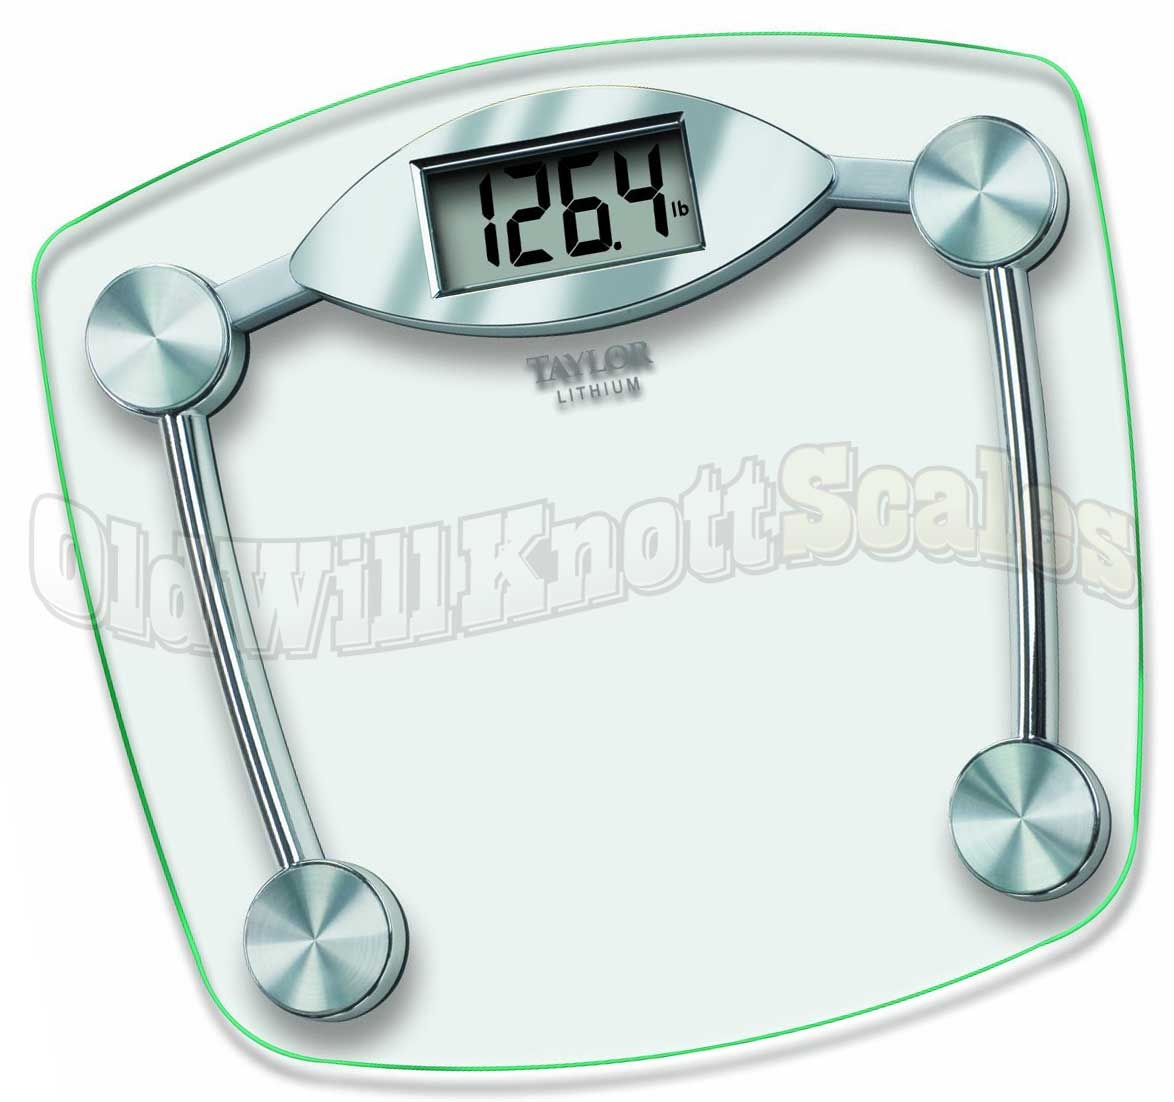 Bathroom scale accuracy consistency - A Consumer Reporting Outfit Unnamed Because They Politely Told Us Not To Rated The 7506 As Their Number 1 Pick For A Bathroom Scale